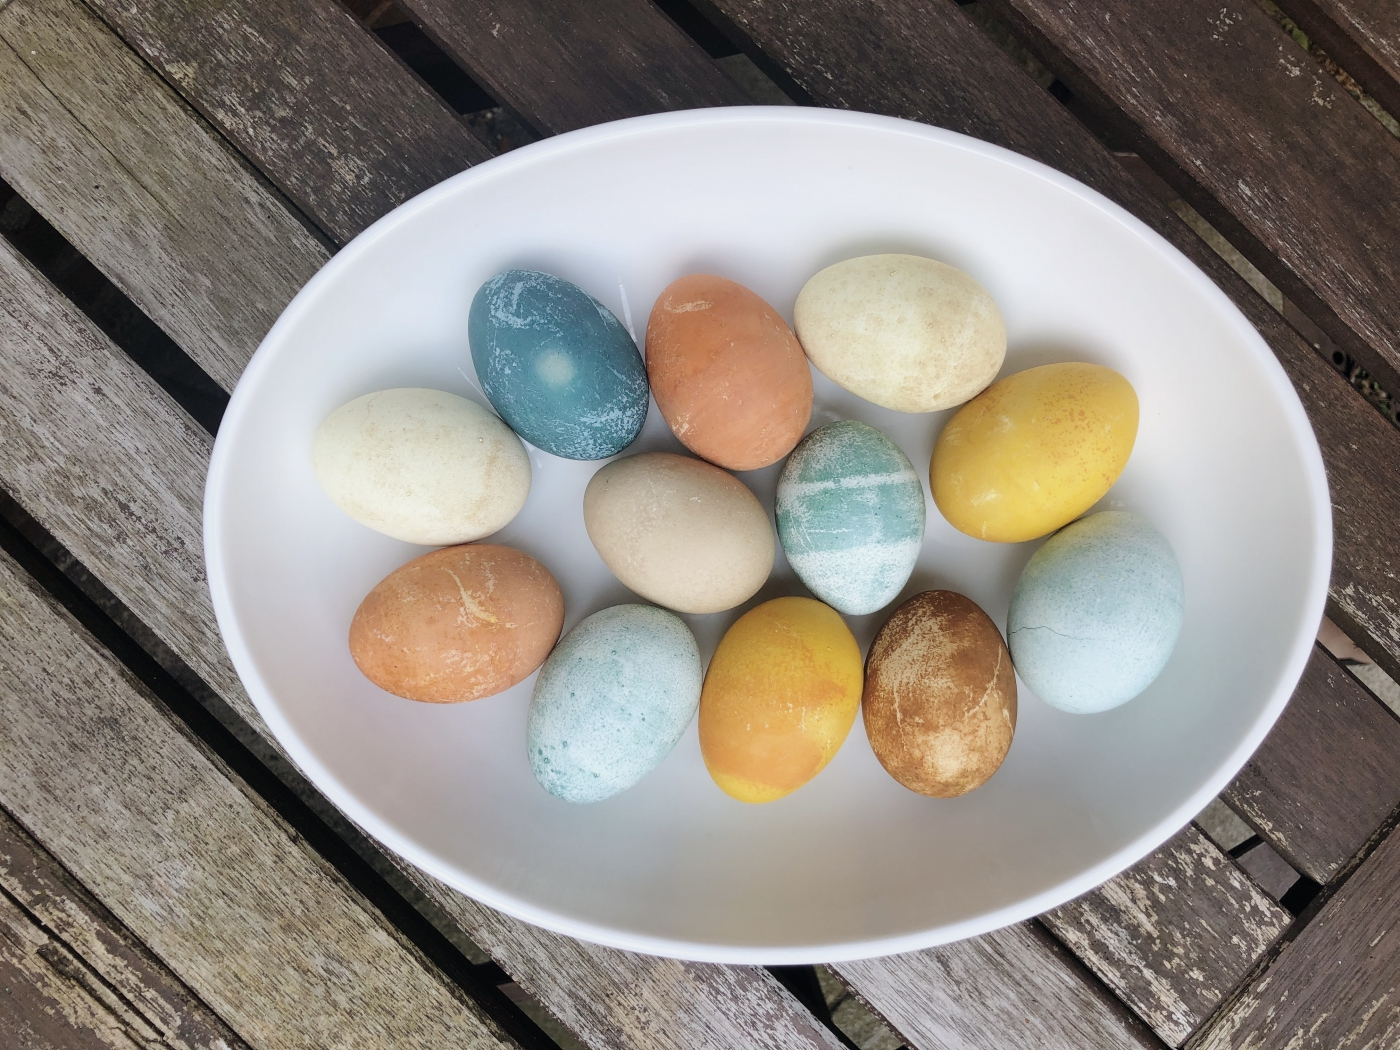 Easter eggs from natural vegetable dye